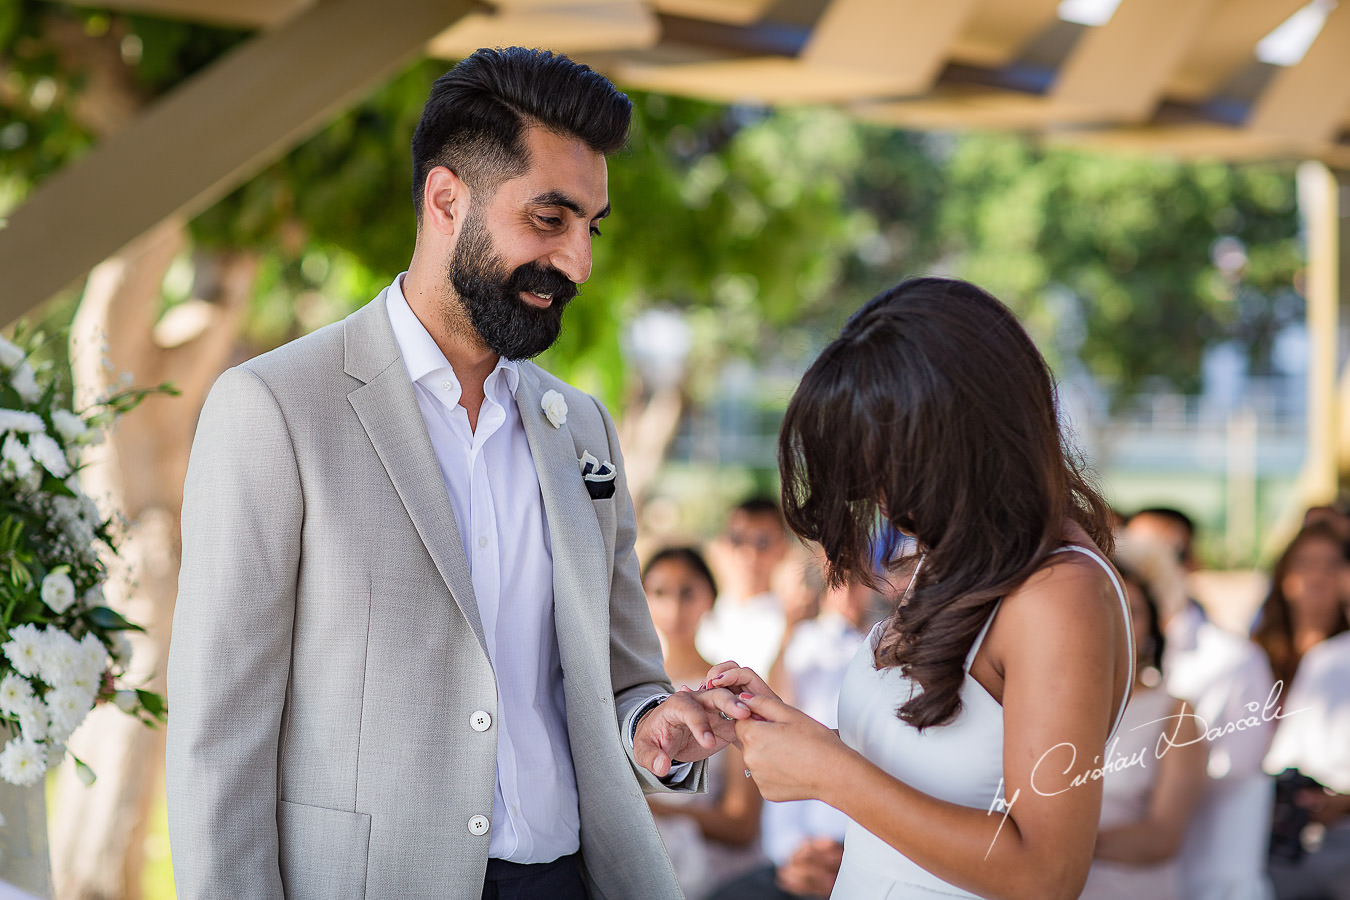 Bride and Groom changing rings, moments photographed by Cristian Dascalu at Athena Beach Hotel in Paphos, Cyprus, during a symbolic wedding.